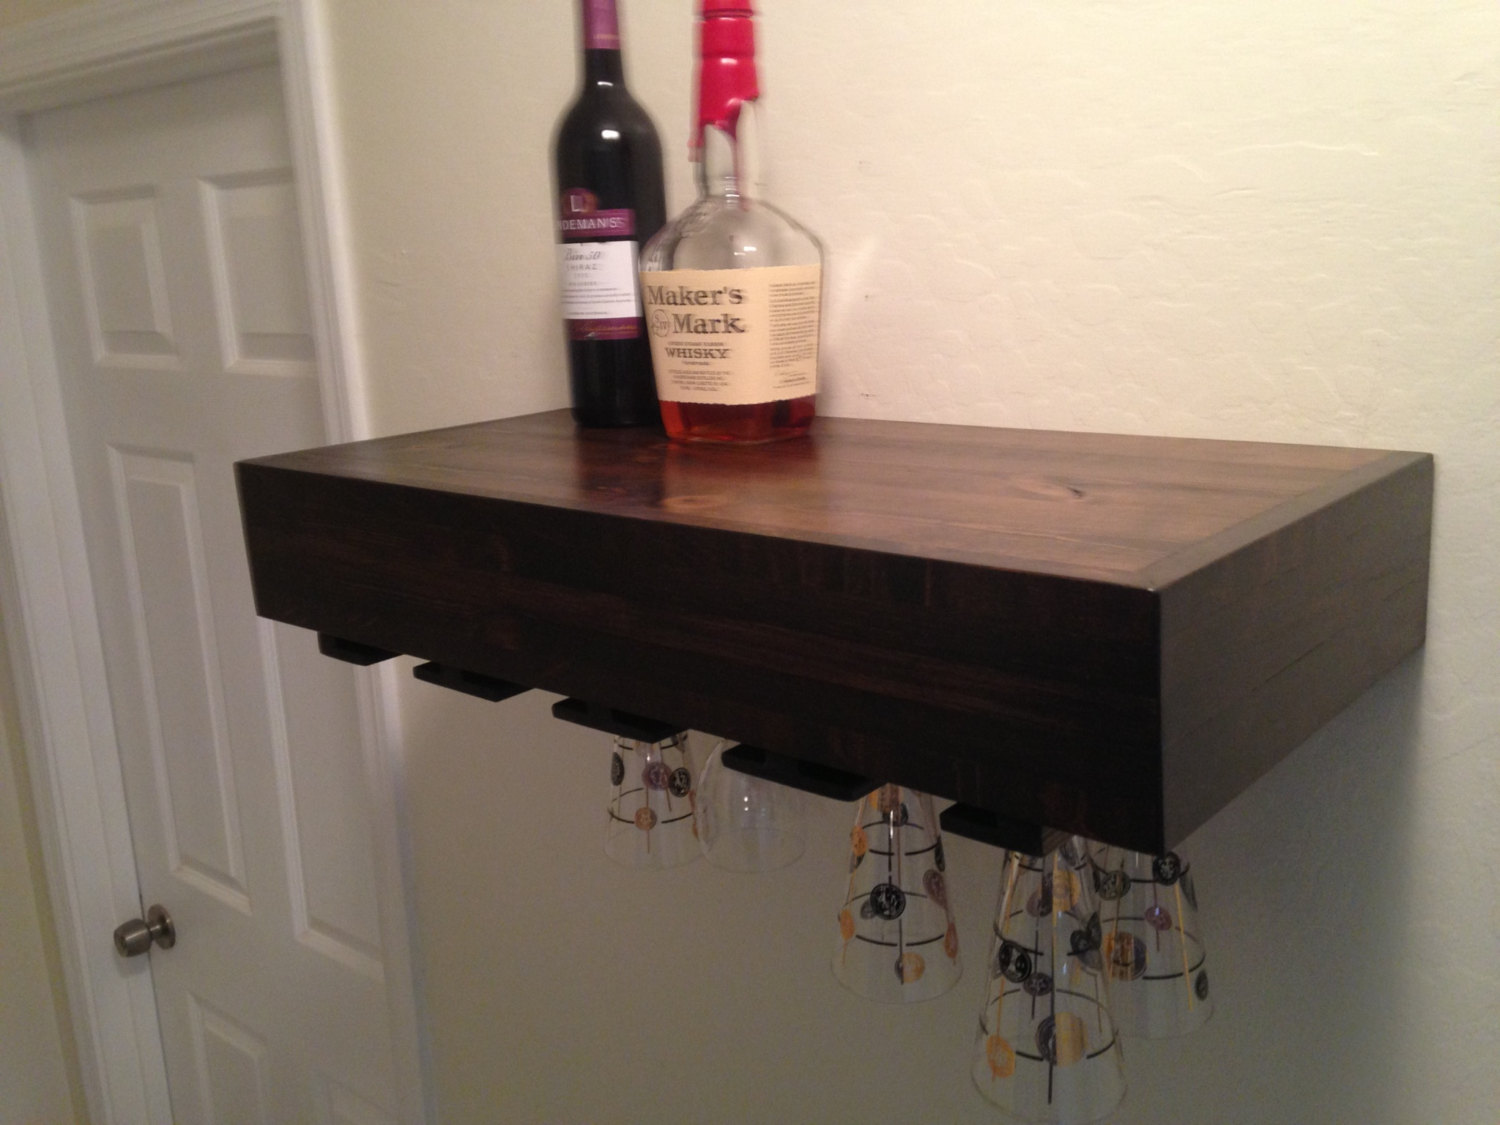 floating wine glass shelf brilliant shelves rack designs intended for edmonton portable kitchen islands with breakfast bar office table bookshelf cal king frame arrangement most